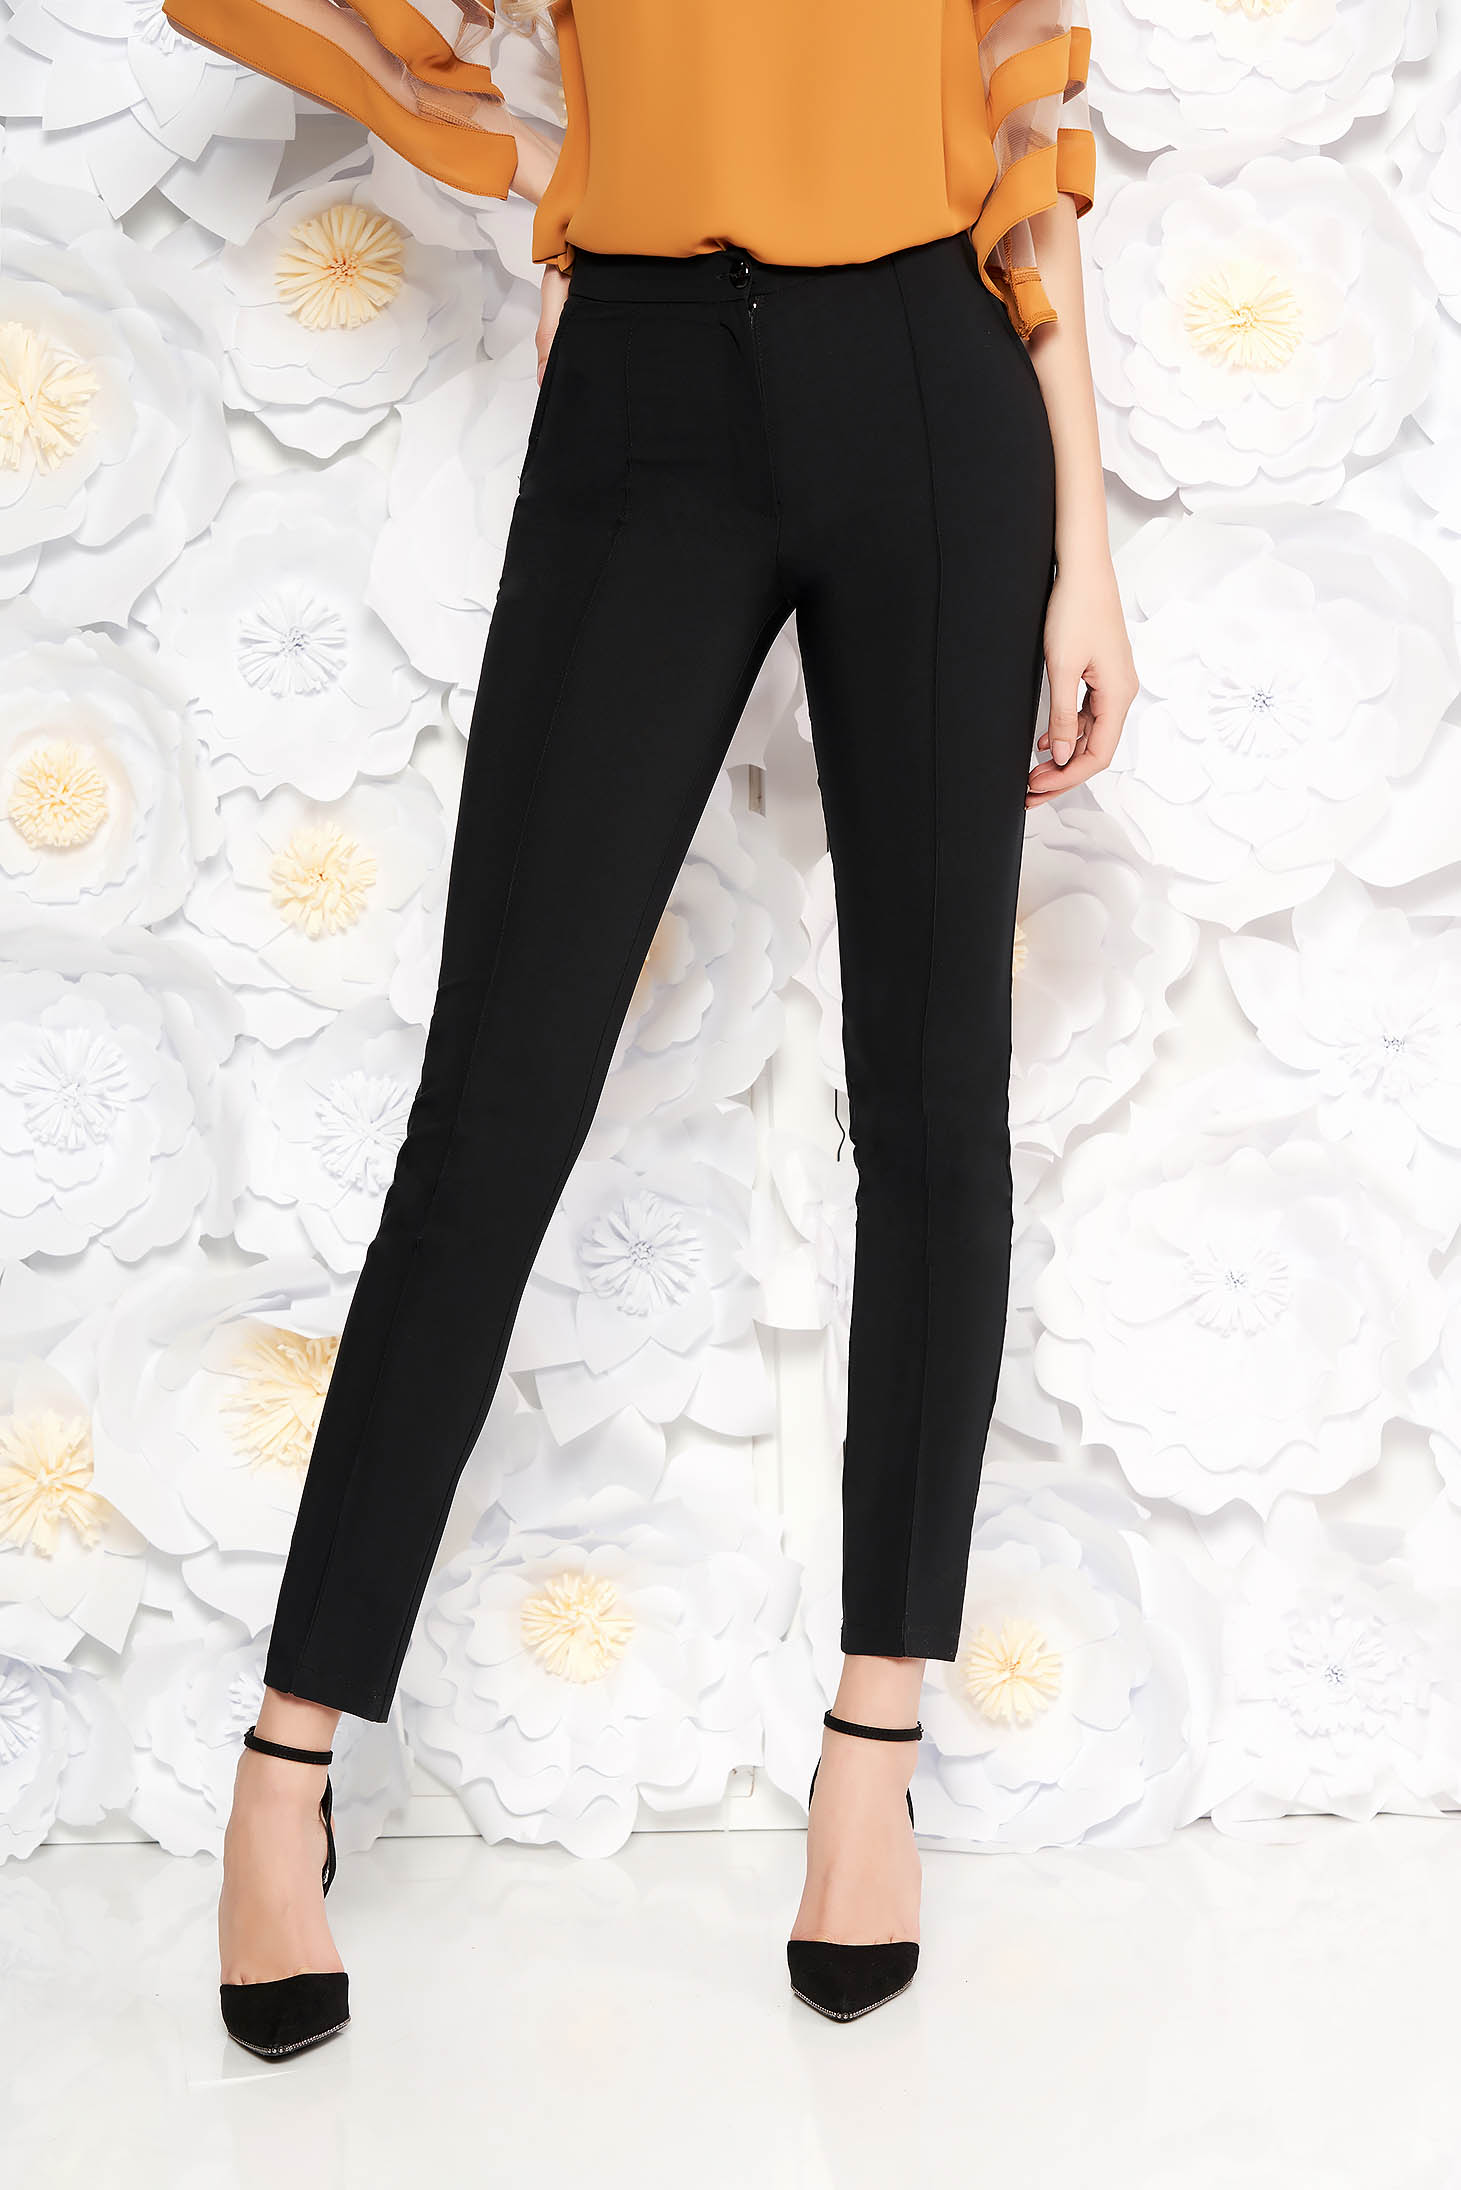 LaDonna black trousers with medium waist office conical slightly elastic fabric with faux pockets